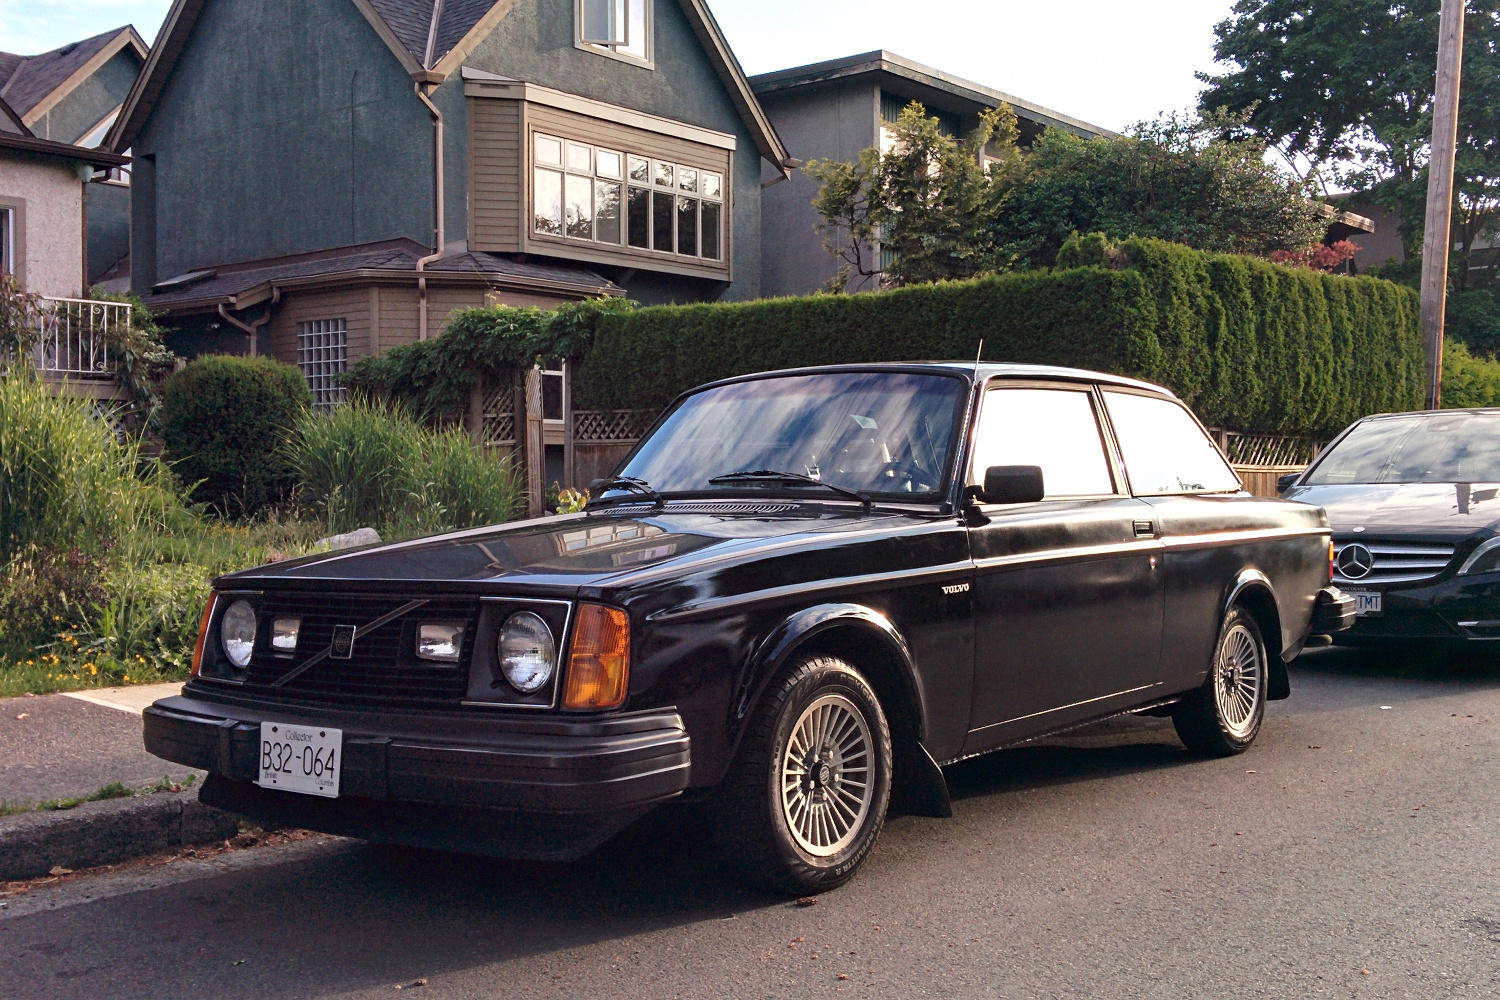 Old Parked Cars Vancouver: 1980 Volvo 242 GT